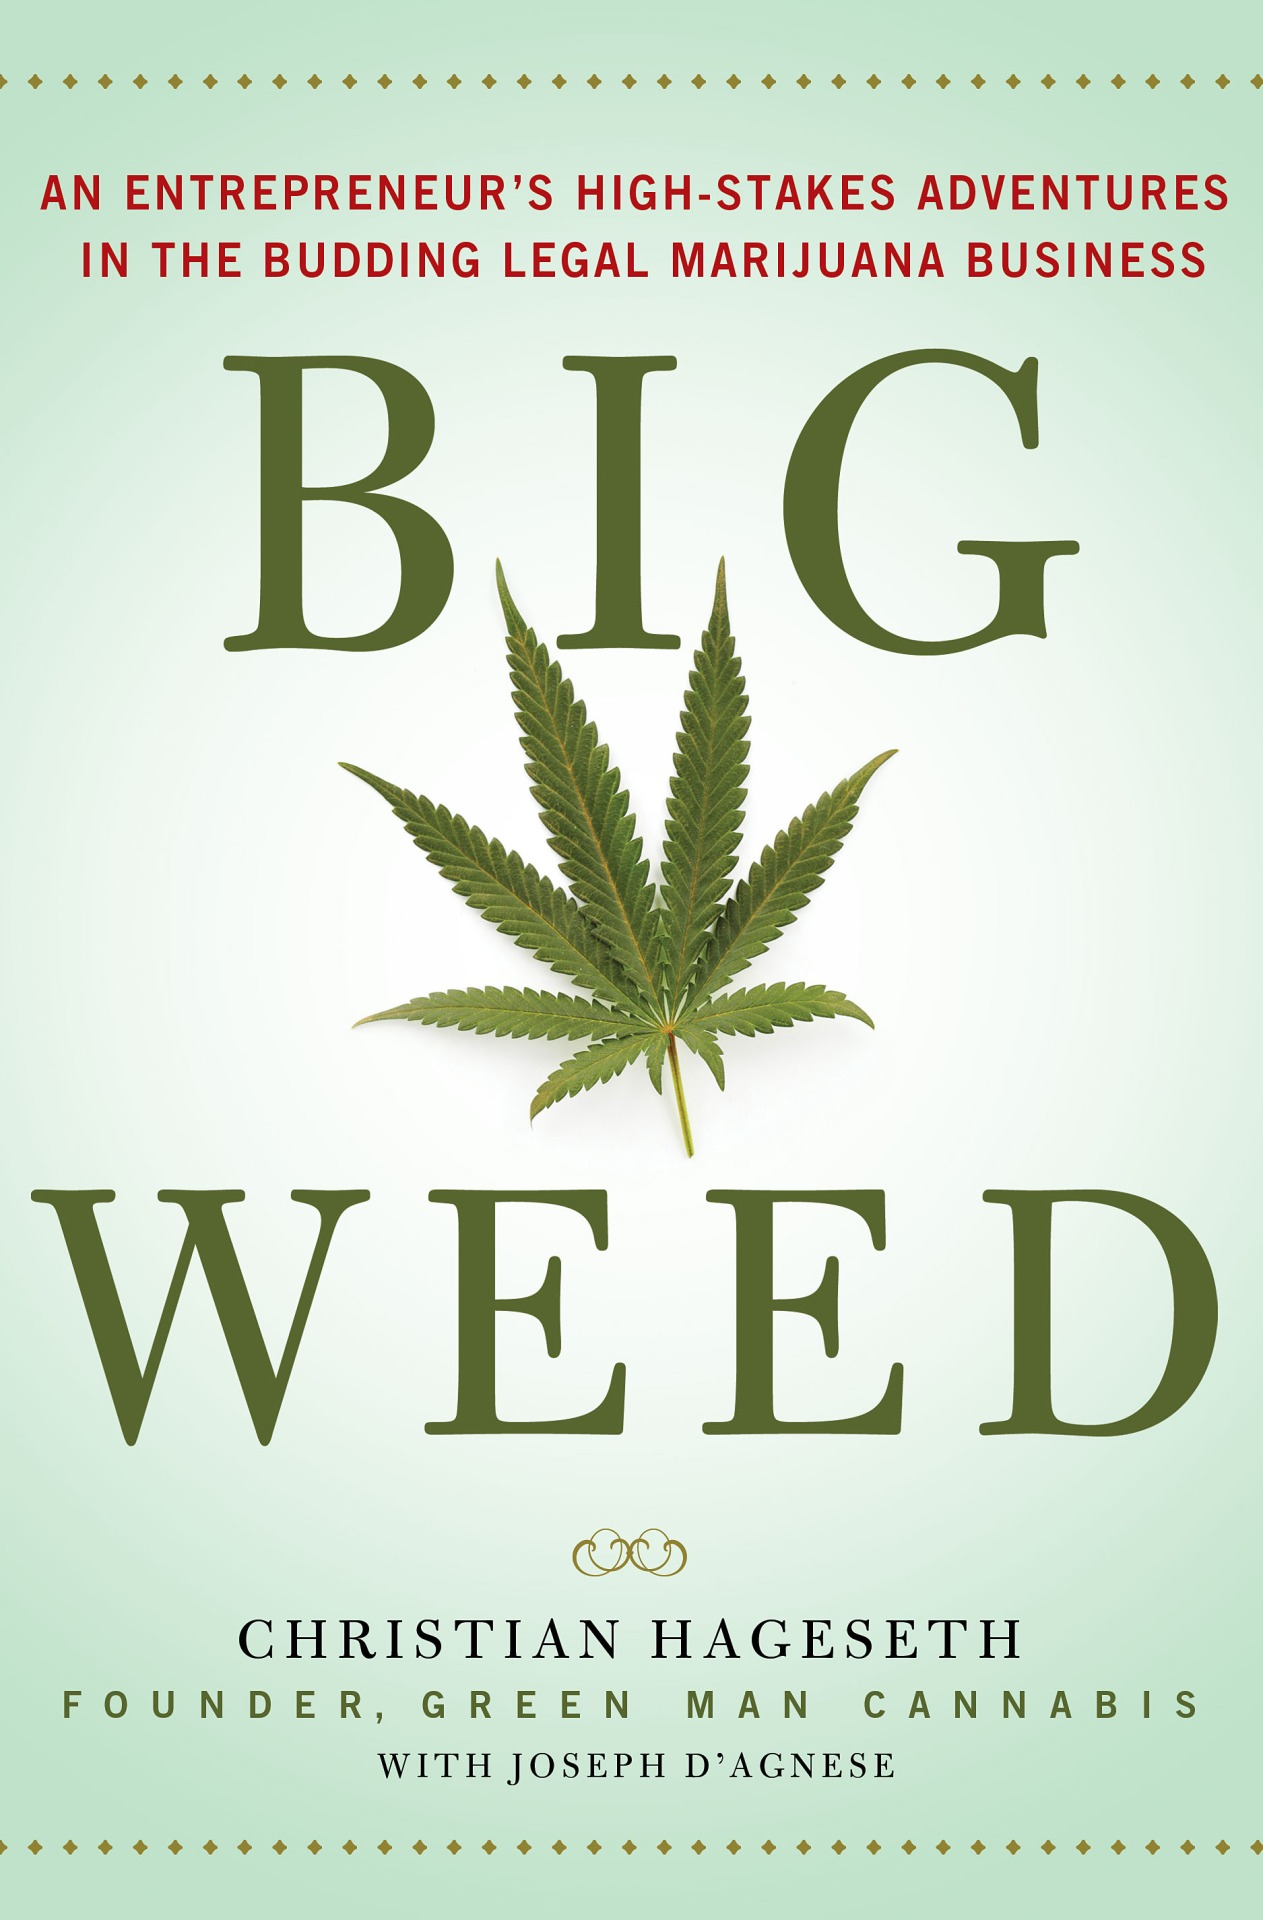 "Pre-order: BIG WEED    I ghosted a business memoir this year that is already up for pre-order on  Amazon ,  BN ,  iBookstore , and  Kobo . Among other things, it's story of a Colorado businessman who dreams of building a state-of-the-art tourist destination in the foothills of the Rockies devoted to the glory of (legal) marijuana—and makes that dream come true. He shares the story of how he got into this burgeoning field, his company's ups and downs, and insights that can be applied to almost any other business.   I've written about a half dozen books for business guys, in their voices, but Mr. Hageseth is the first to permit me to share a byline with him. You can see the gorgeous plans of his upcoming ""weedery""—which I'd describe as being like a brew ery , win ery , mead ery , or cid ery , only with marijuana— at this website . The $25 million-dollar facility is currently under construction.   Palgrave/Macmillan pubs the book April 20, 2015, a date that has special significance for cannabis lovers. What's my special contribution to this project?  Sneaking into the text this H.P. Lovecraft reference .    Please note:  If you would prefer to pre-order through an independent bookstore, please hold off buying. I should have info about signed indie pre-orders soon. In any case, keep a receipt of your purchase. There is likely to be some type of intoxicating giveaway looming in the future."